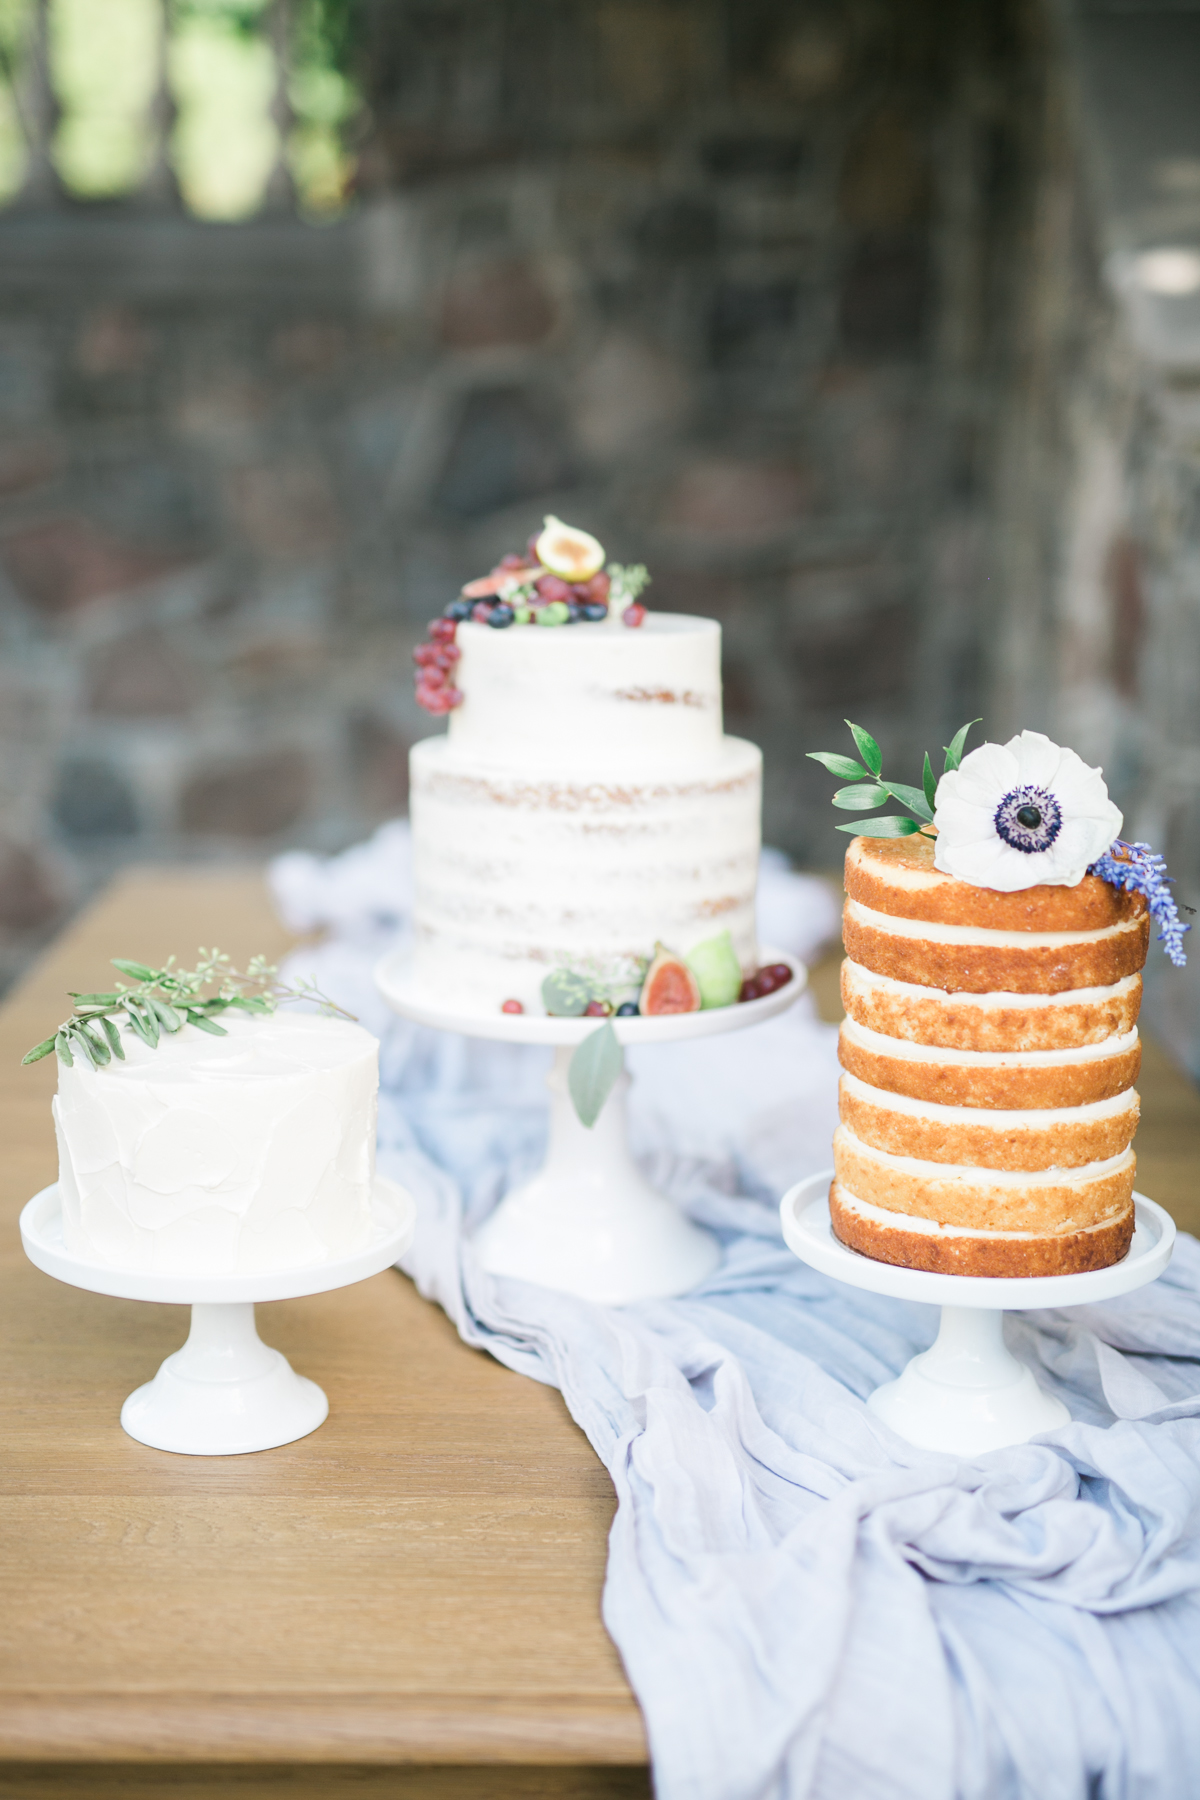 August In Bloom - Half naked cakes with florals and fruits - Fairytale Wedding (Wedluxe)